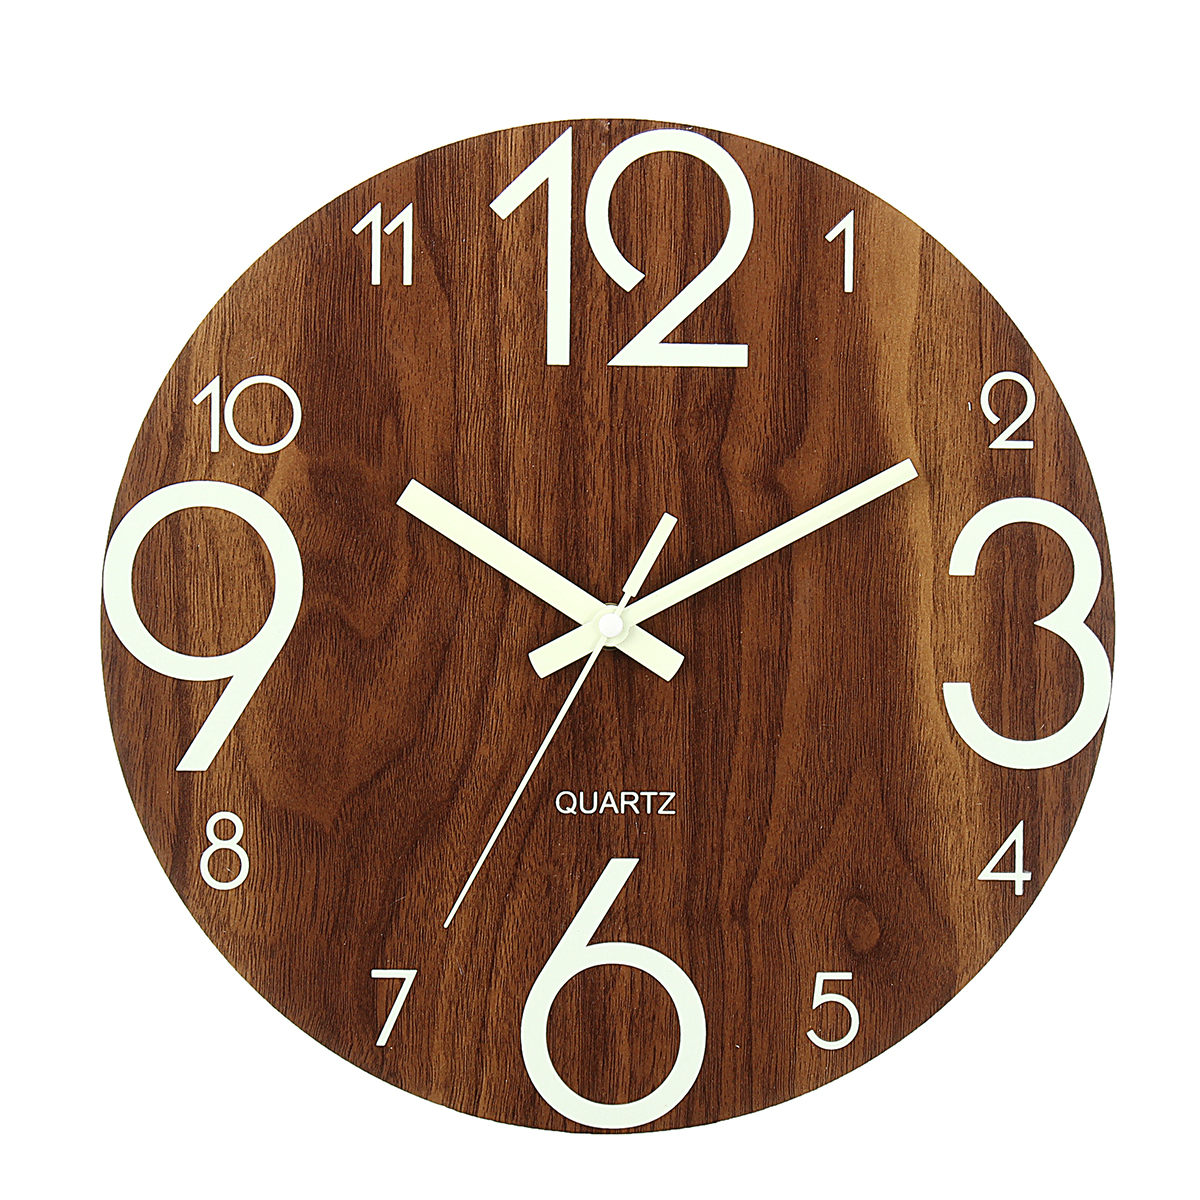 Luminous Wall Clock, 12 Inch Wooden Silent Non-Ticking ... on Decorative Wall Sconces Non Lighting id=23706